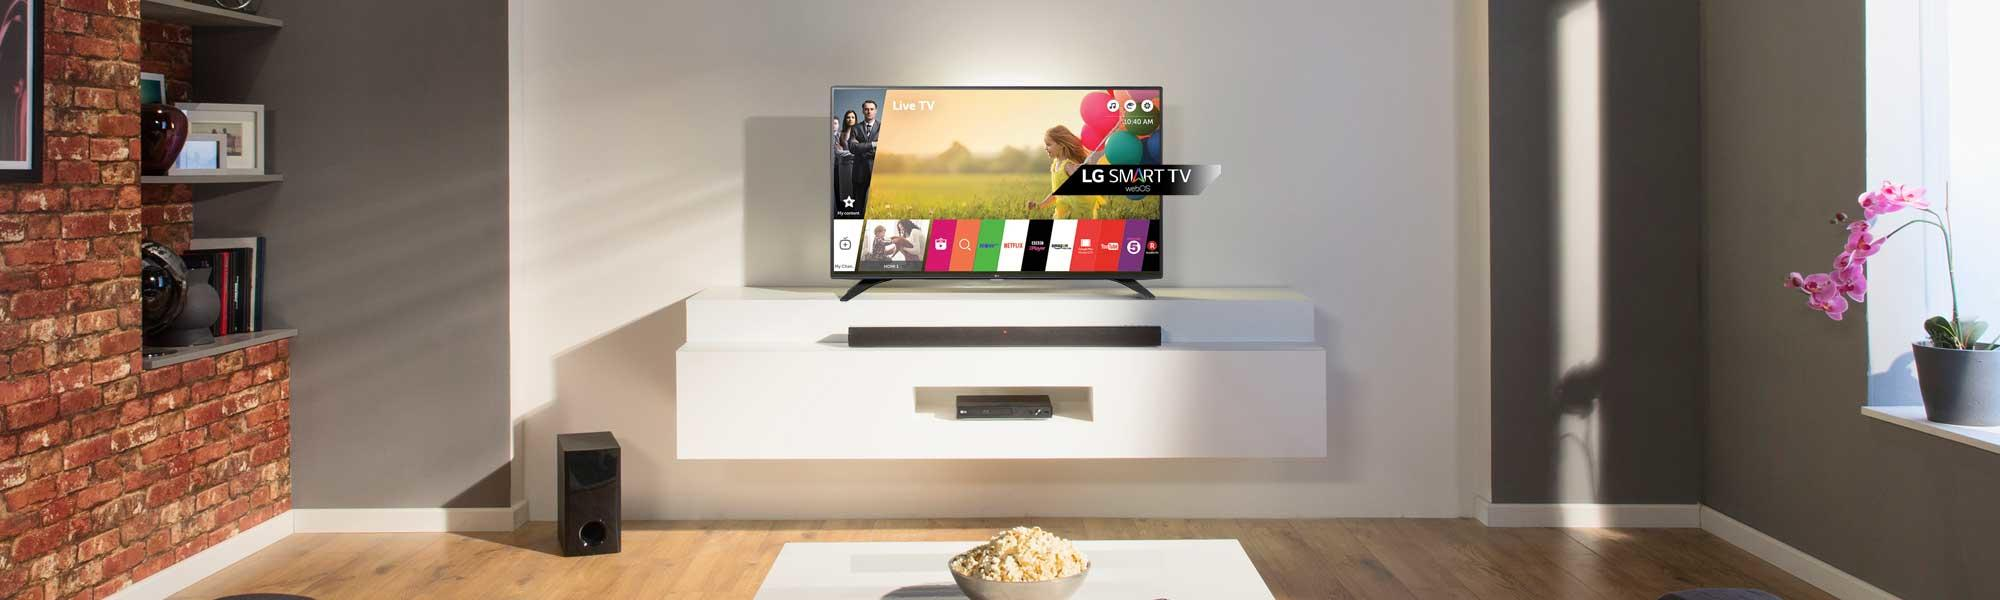 "LG 43LH604V 43"" Full HD LED Smart TV"